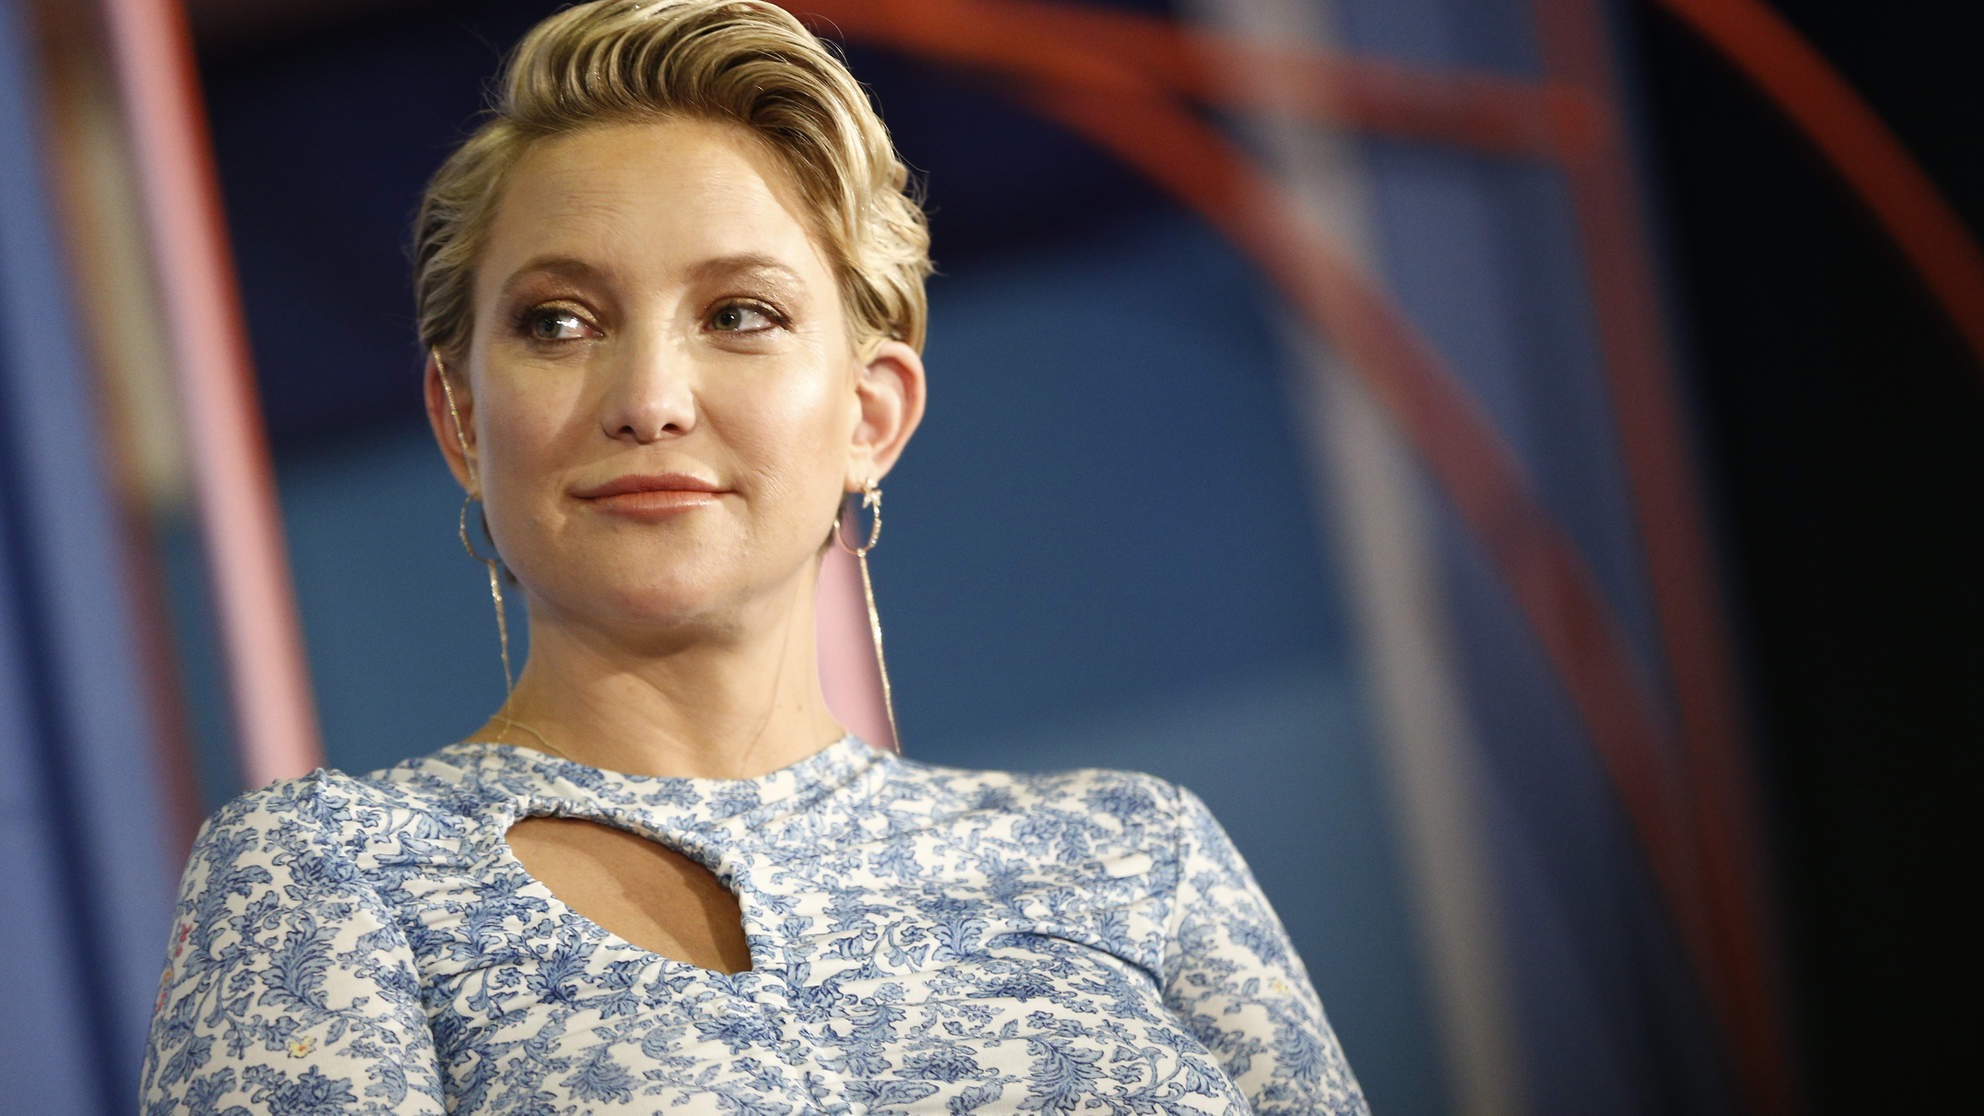 Kate Hudson Opens Up About Raising Her Daughter Rani with a 'Genderless' Approach